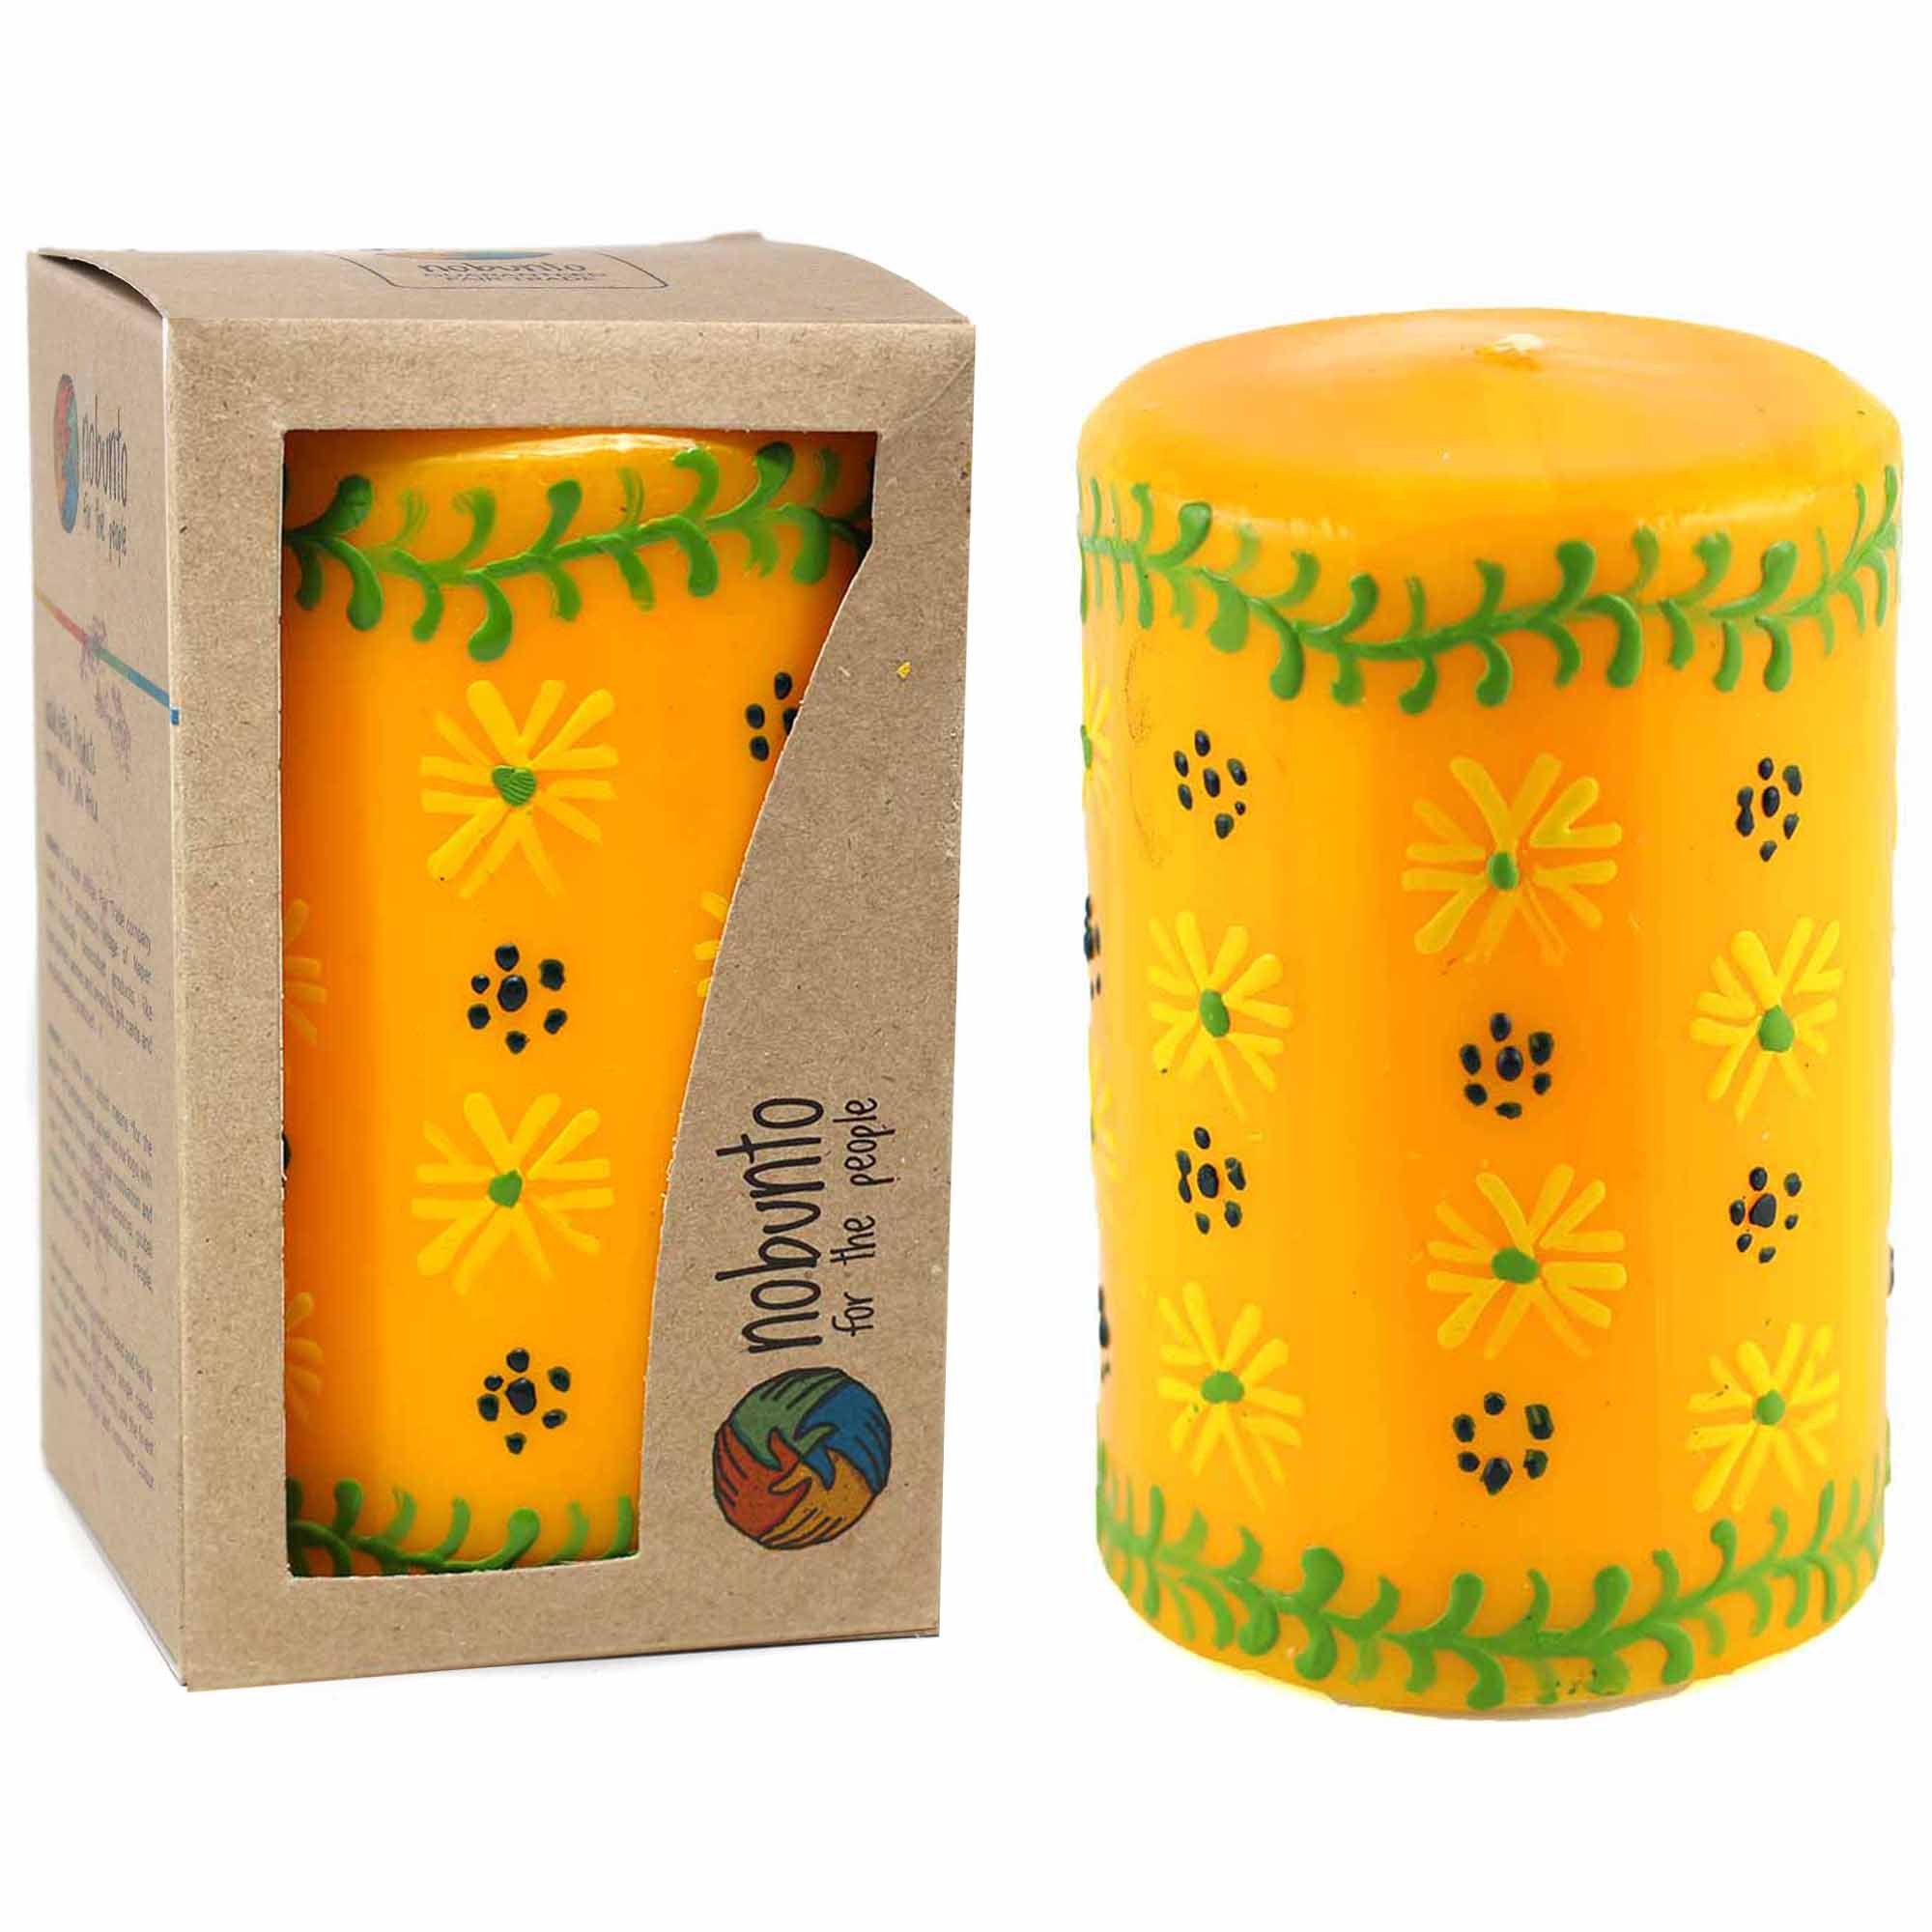 Hand-Painted Yellow Votive Candles, Boxed Set of 3 (Masika Design)